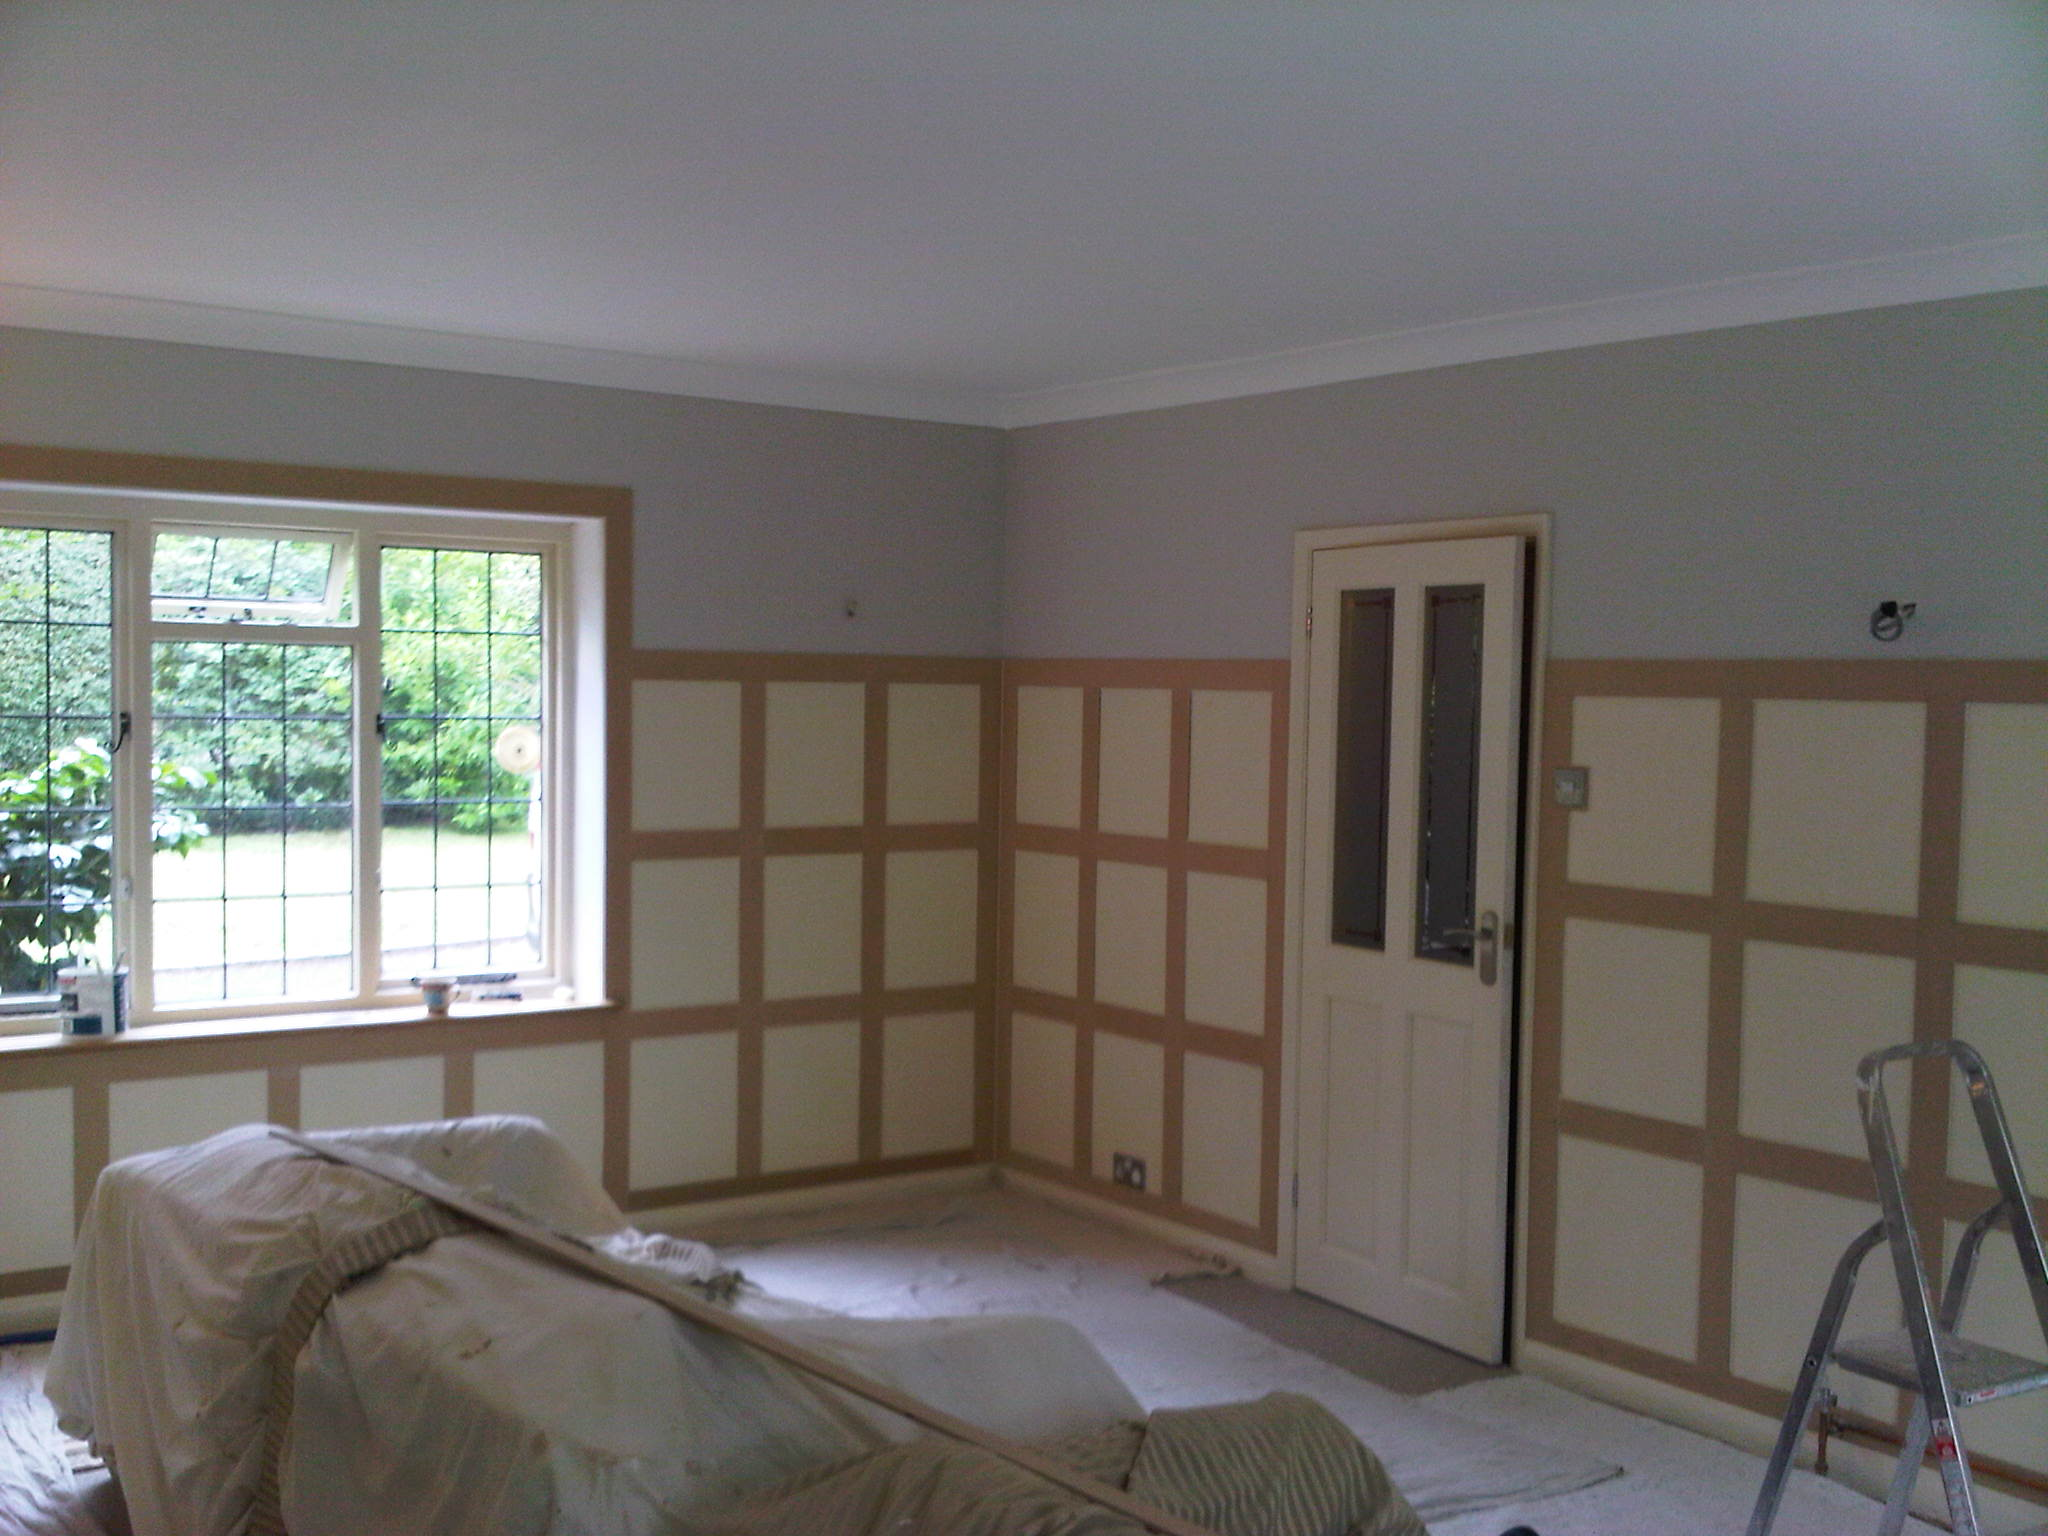 Plastering before